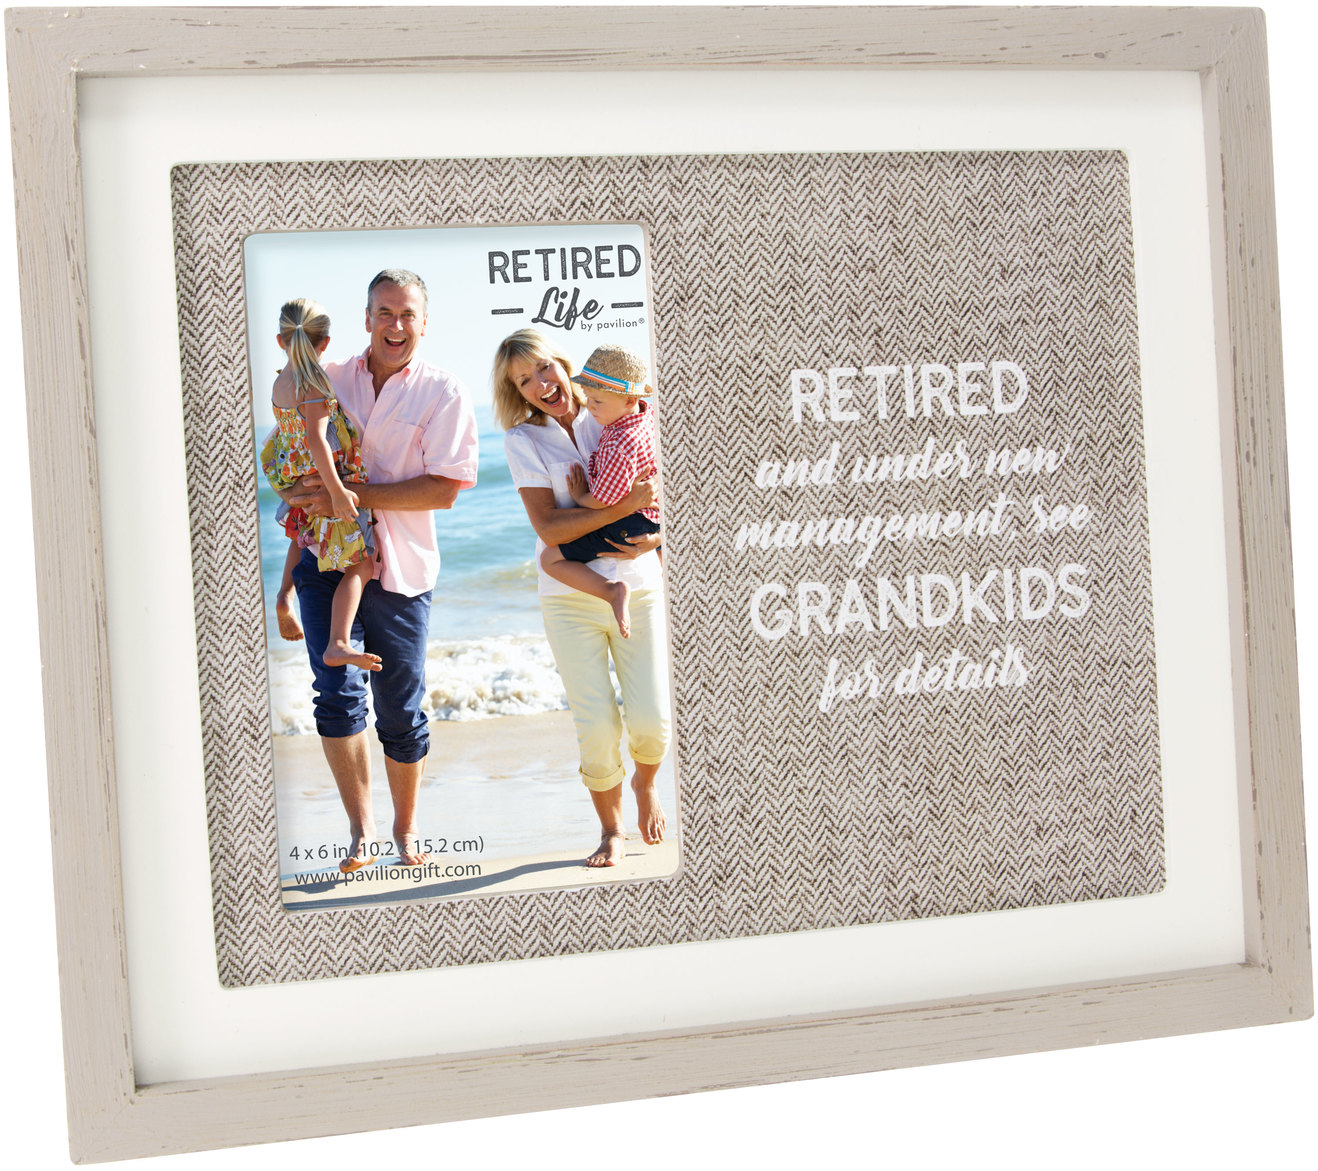 "New Management by Retired Life - New Management - 9.75"" x 8.25"" Frame (Holds 4"" x 6"" Photo)"